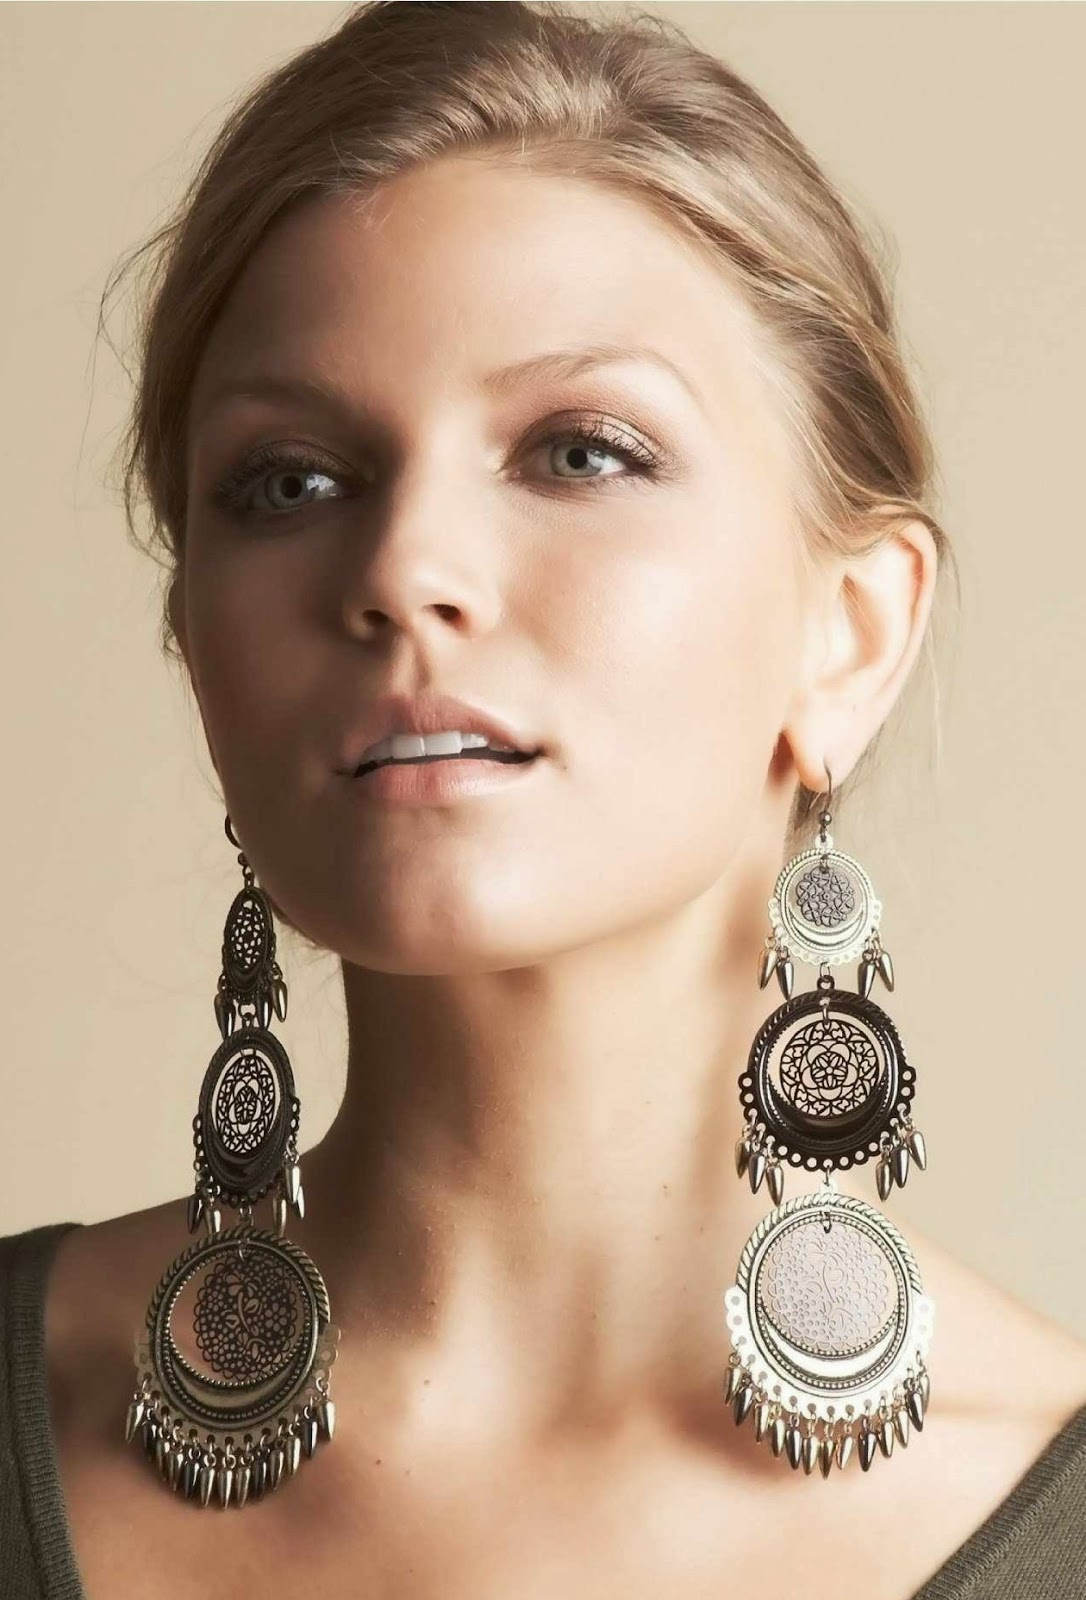 Women Wearing Earrings With Wonderful Image  playzoa.com